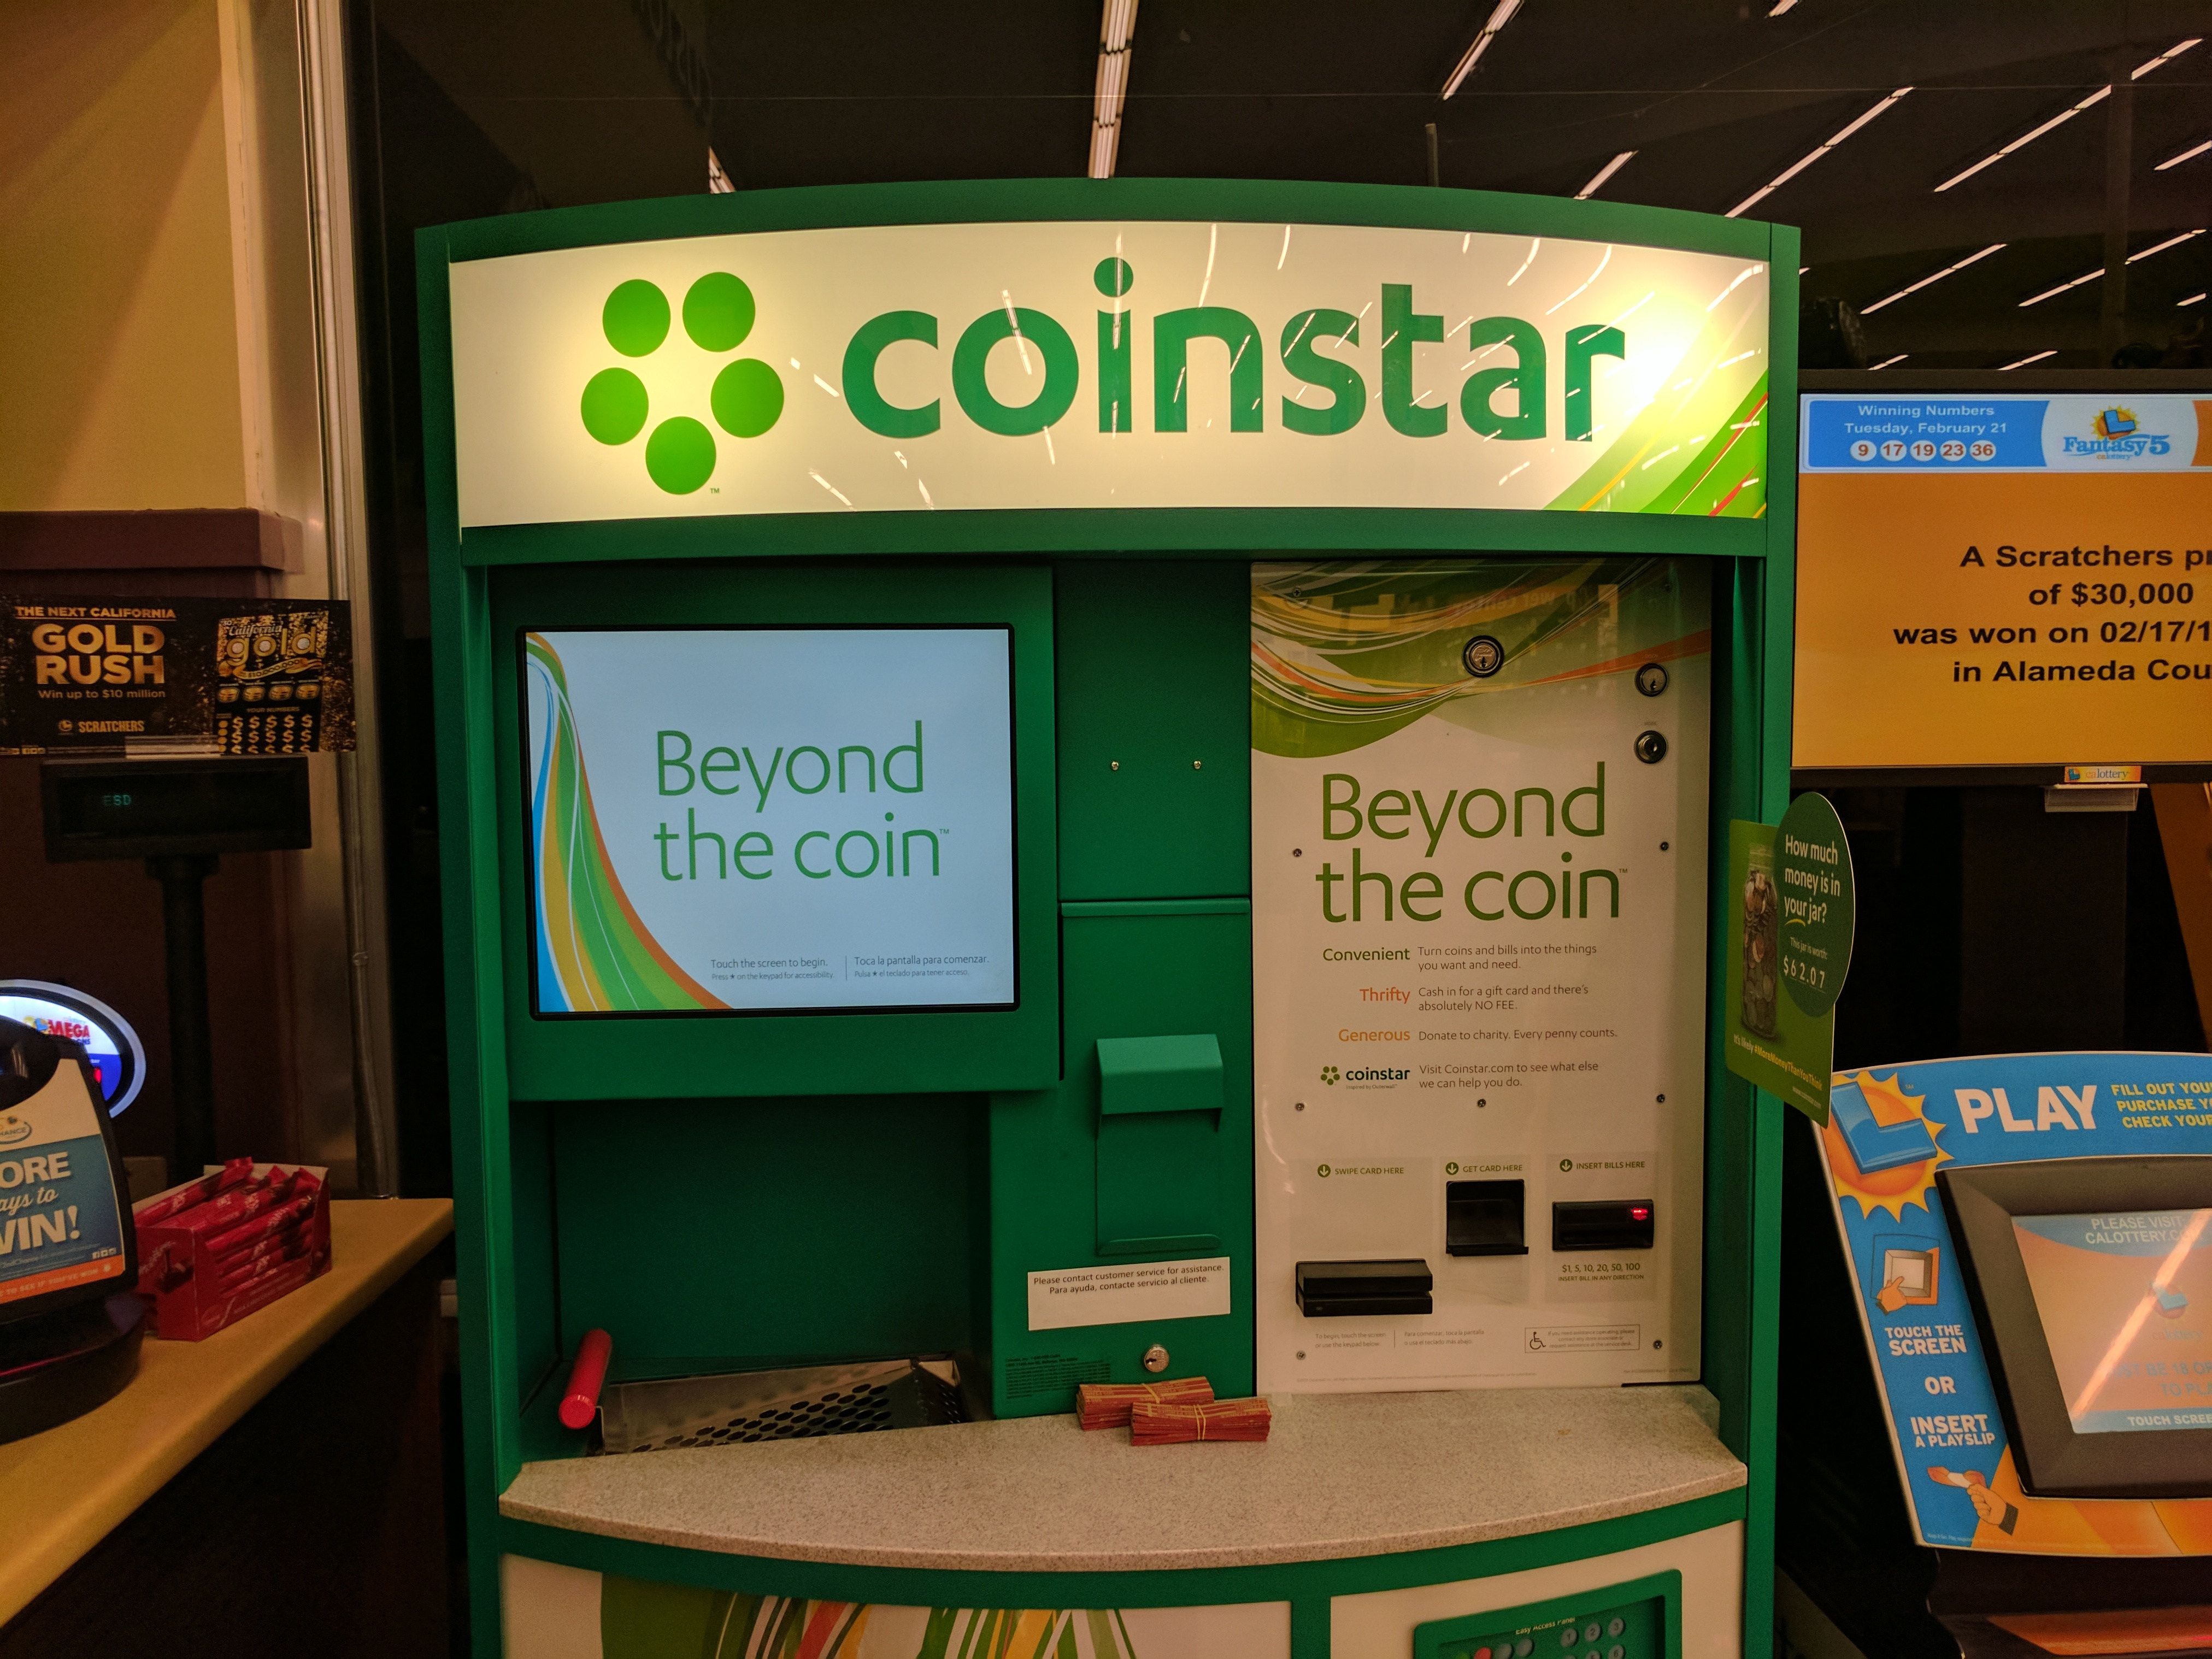 Discussion on this topic: How to Use CoinStar to Donate to , how-to-use-coinstar-to-donate-to/